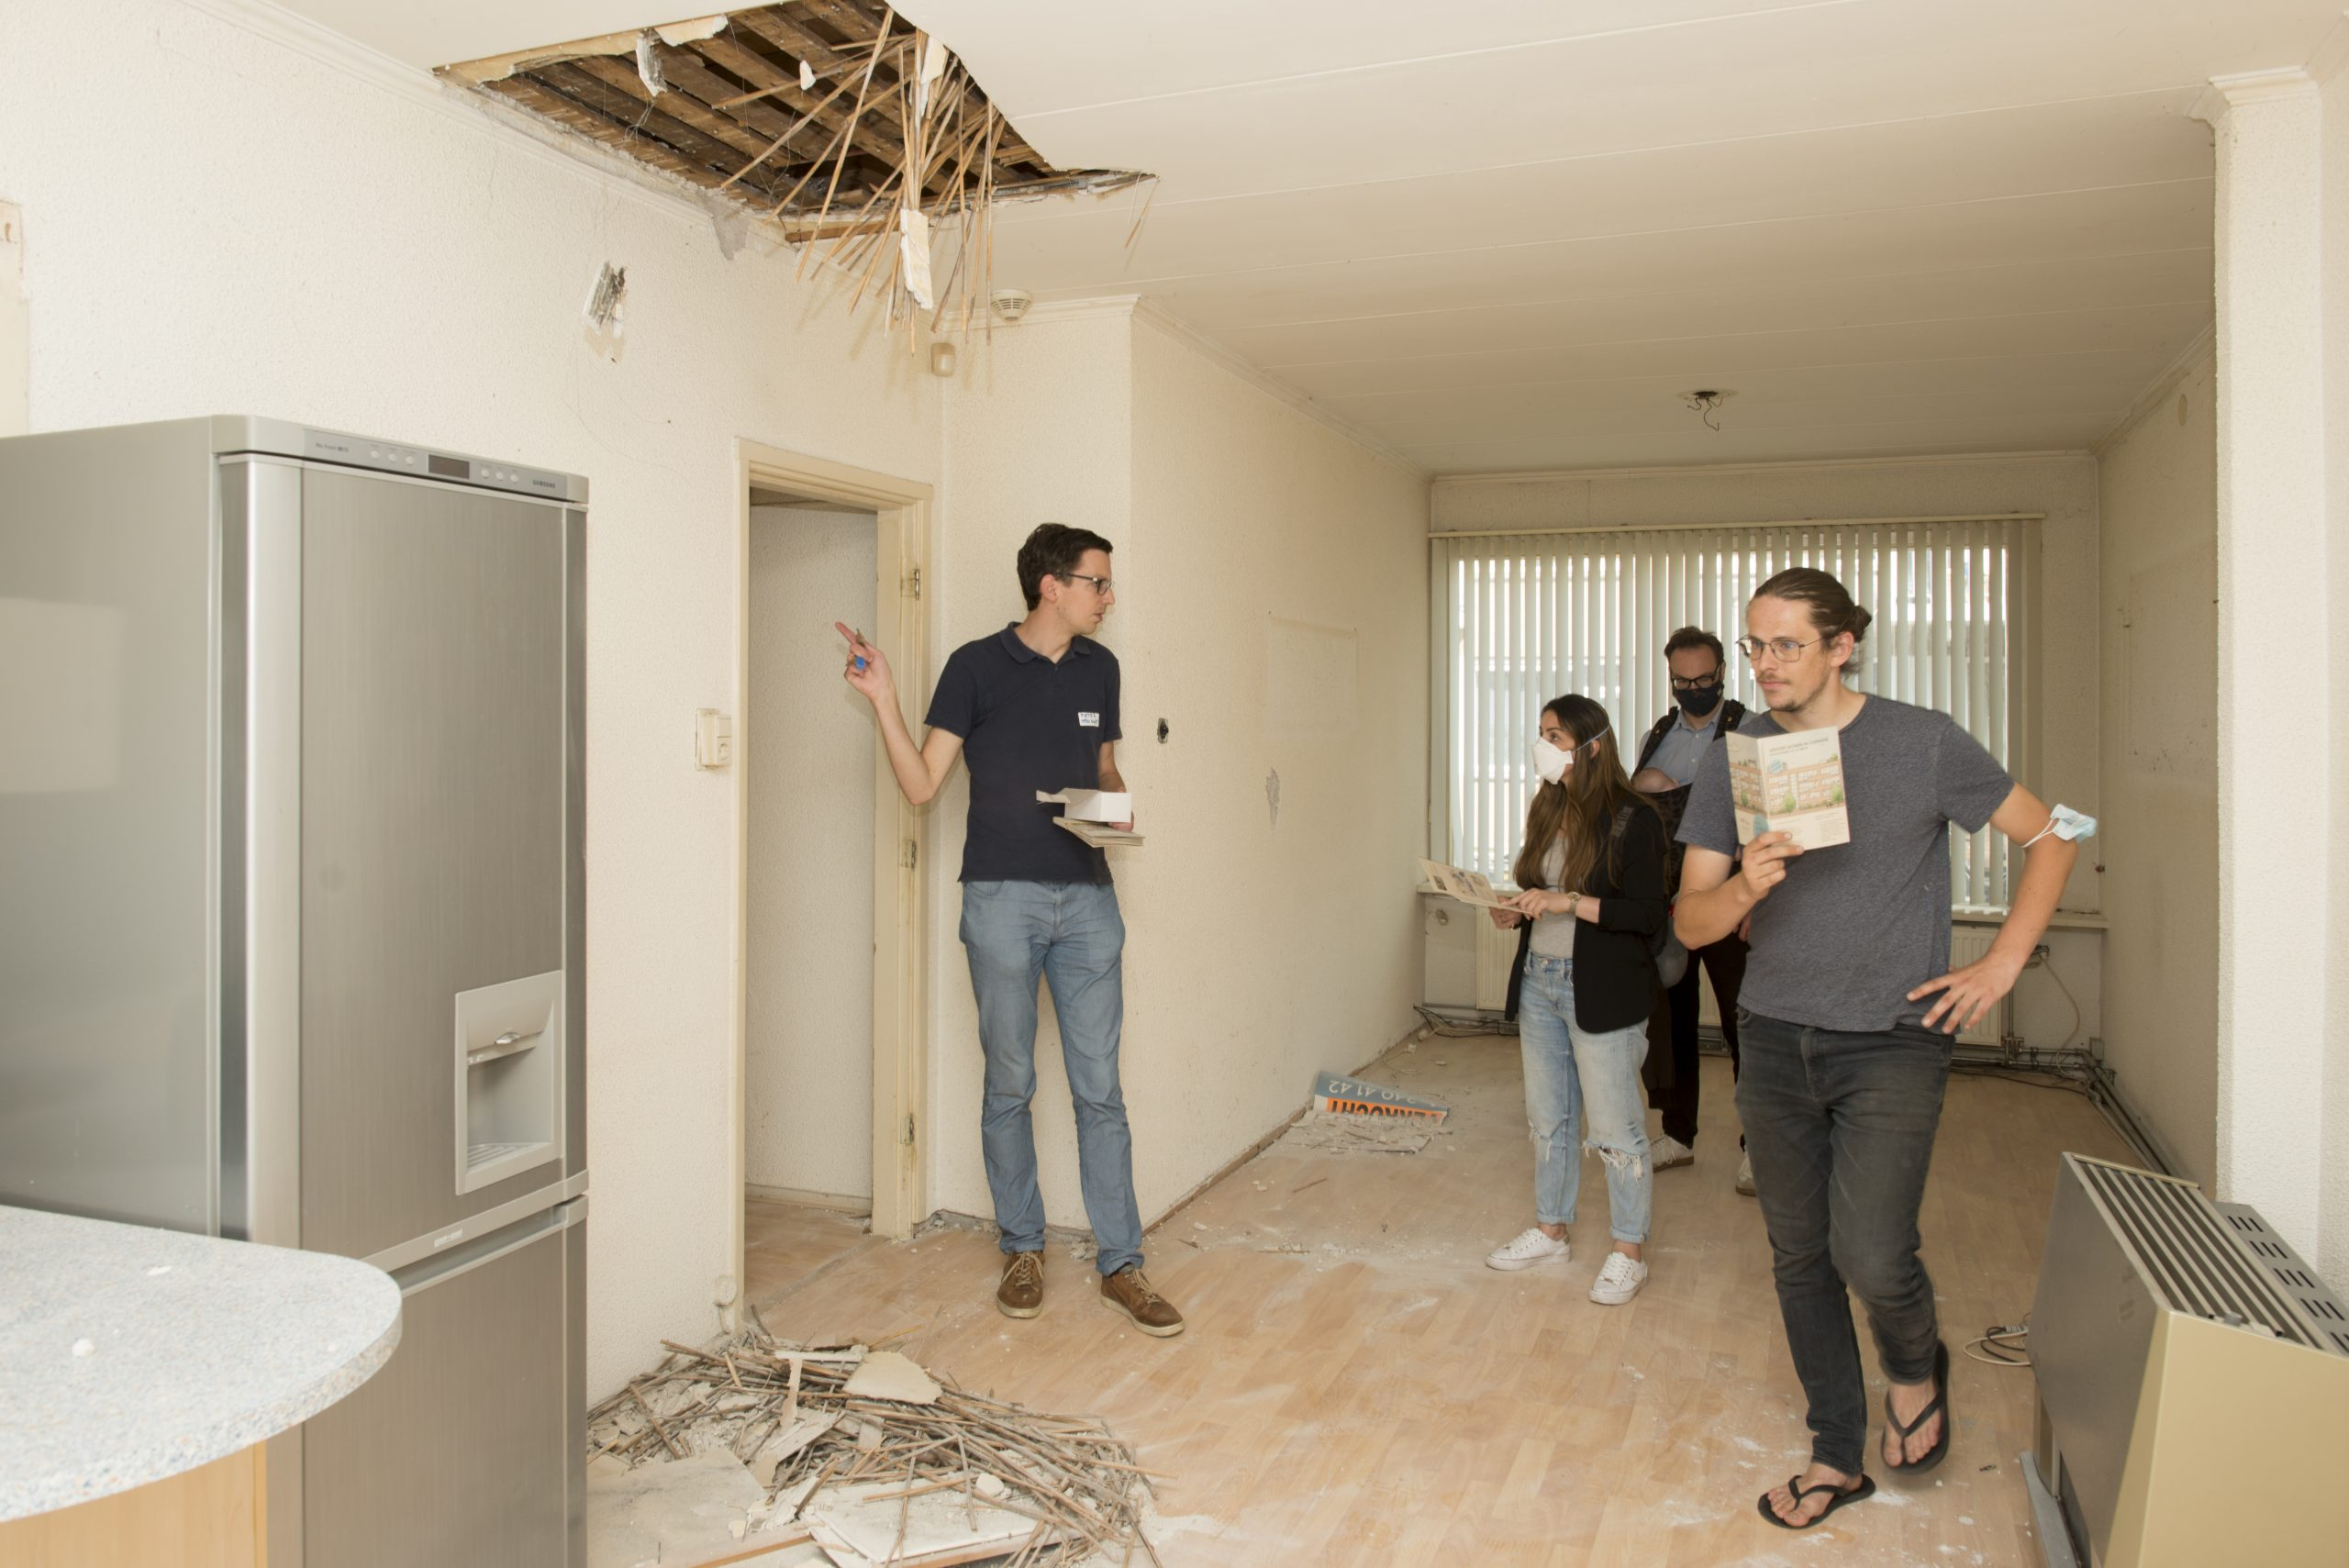 Prospective residents in a apartment open for combining